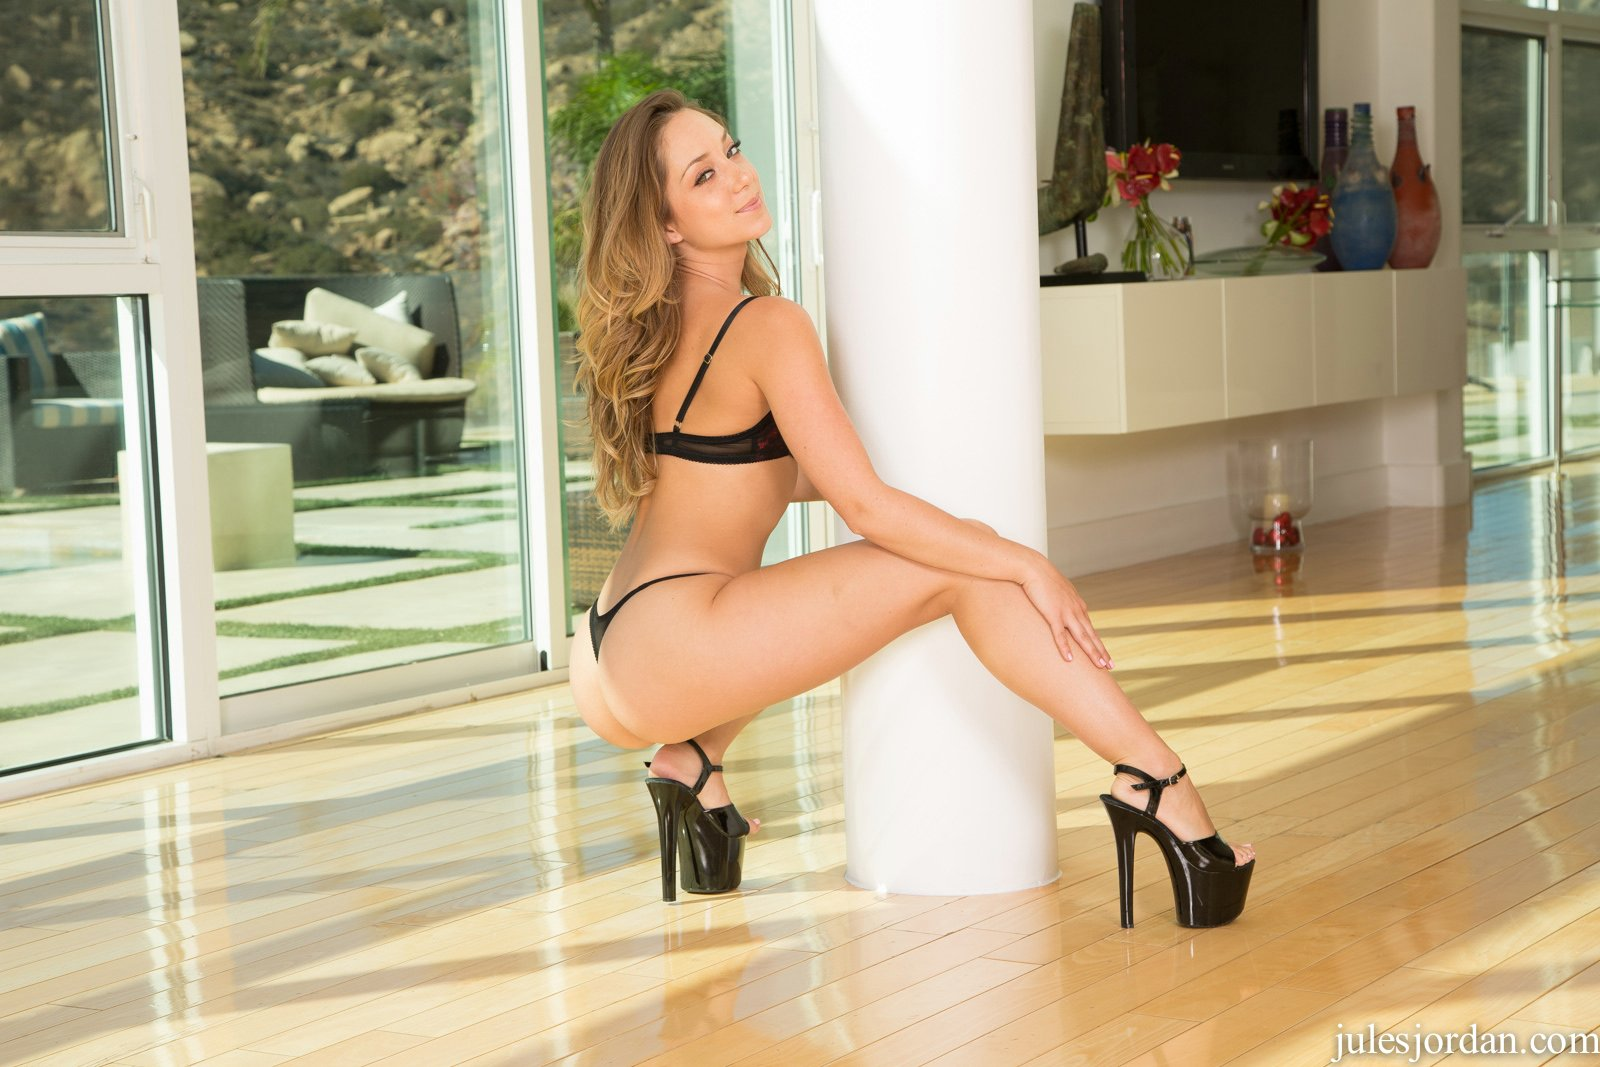 Gorgeous babe Remy LaCroix in sexy heels poses for camera ...